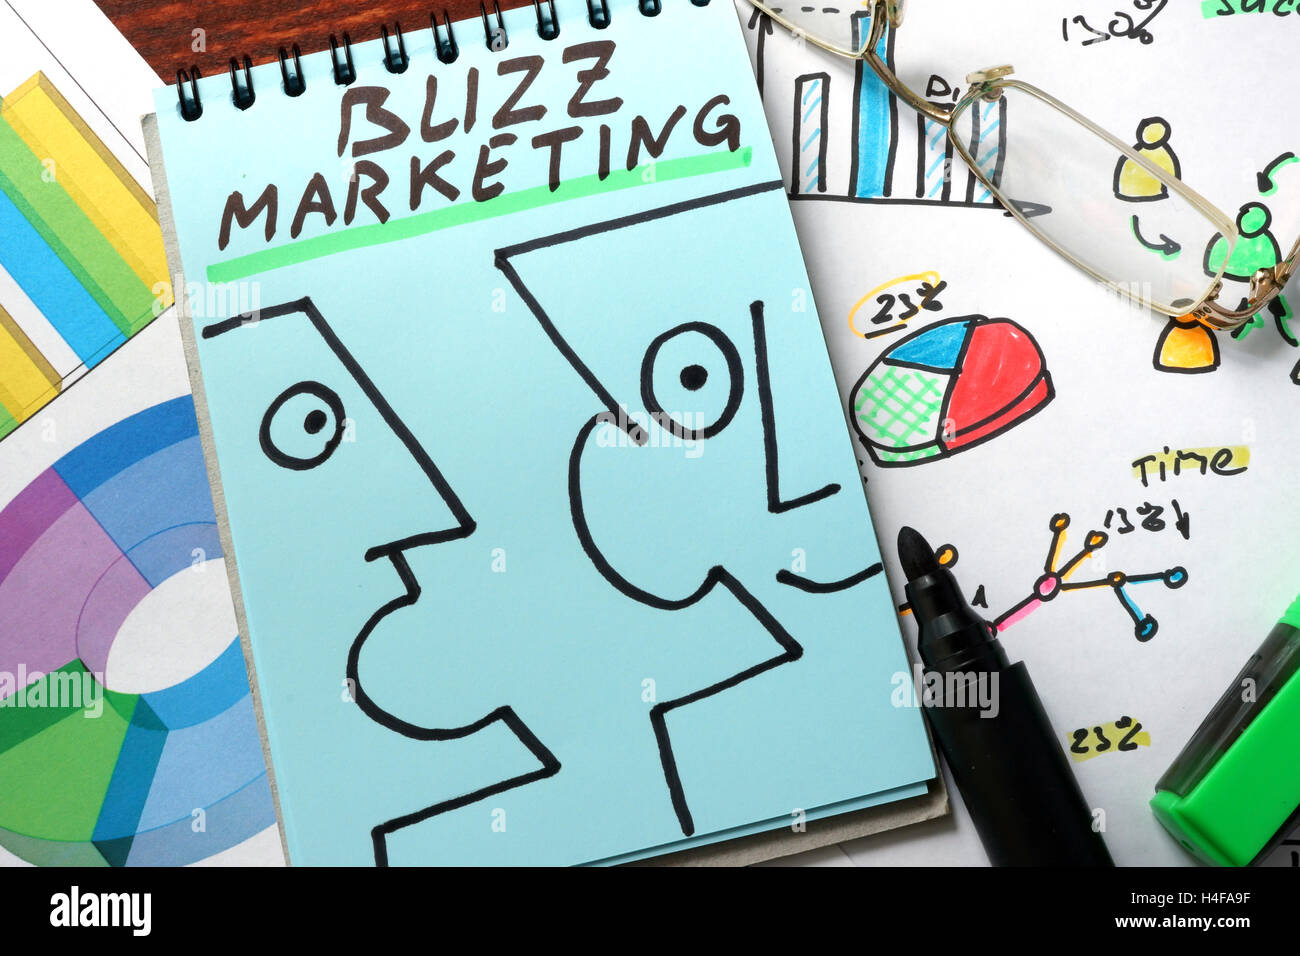 Design On Stock Blizz Bank.Referral Stock Photos Referral Stock Images Alamy